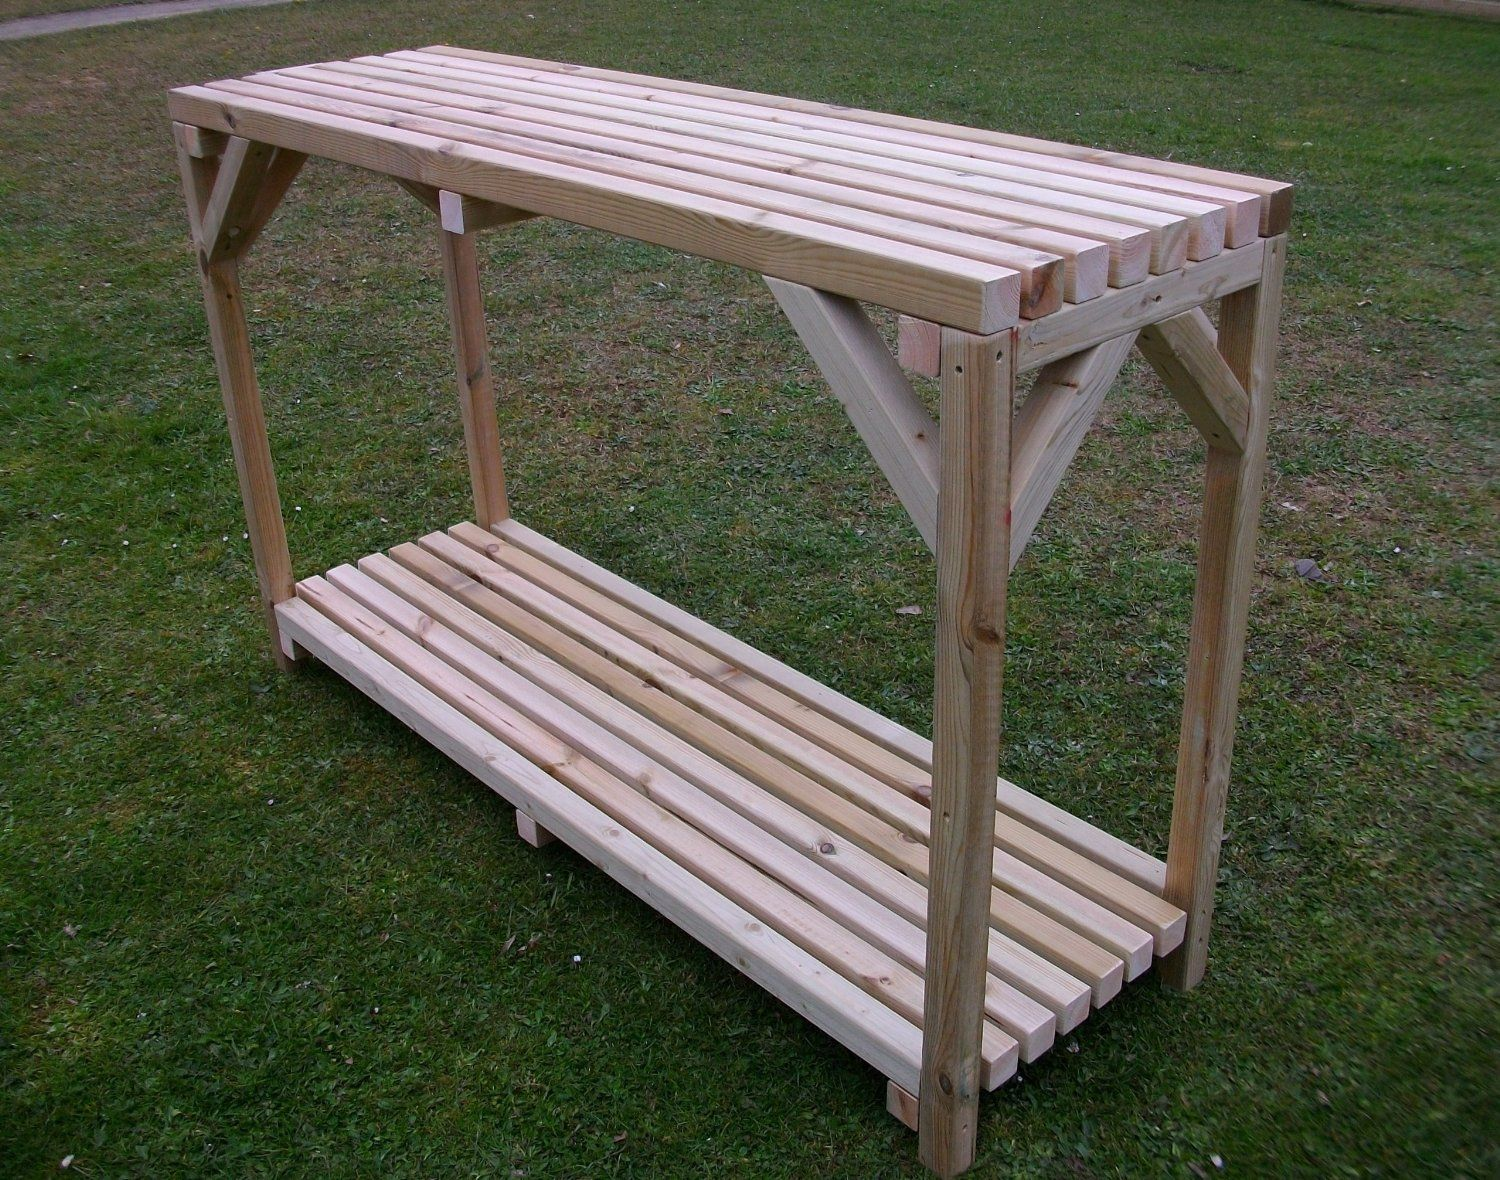 Wooden greenhouse shed potting bench staging table with shelf